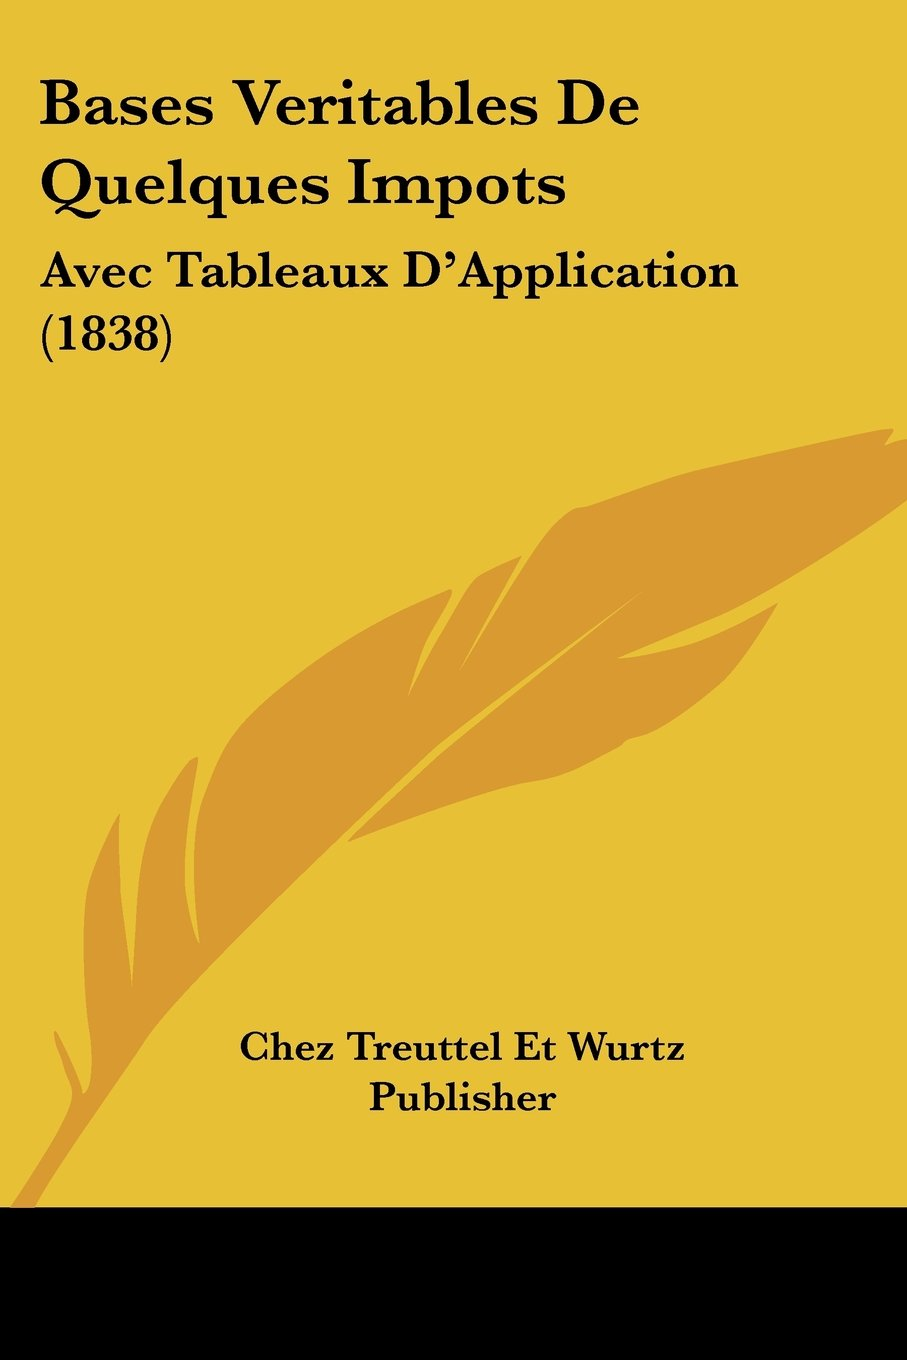 Read Online Bases Veritables De Quelques Impots: Avec Tableaux D'Application (1838) (French Edition) PDF